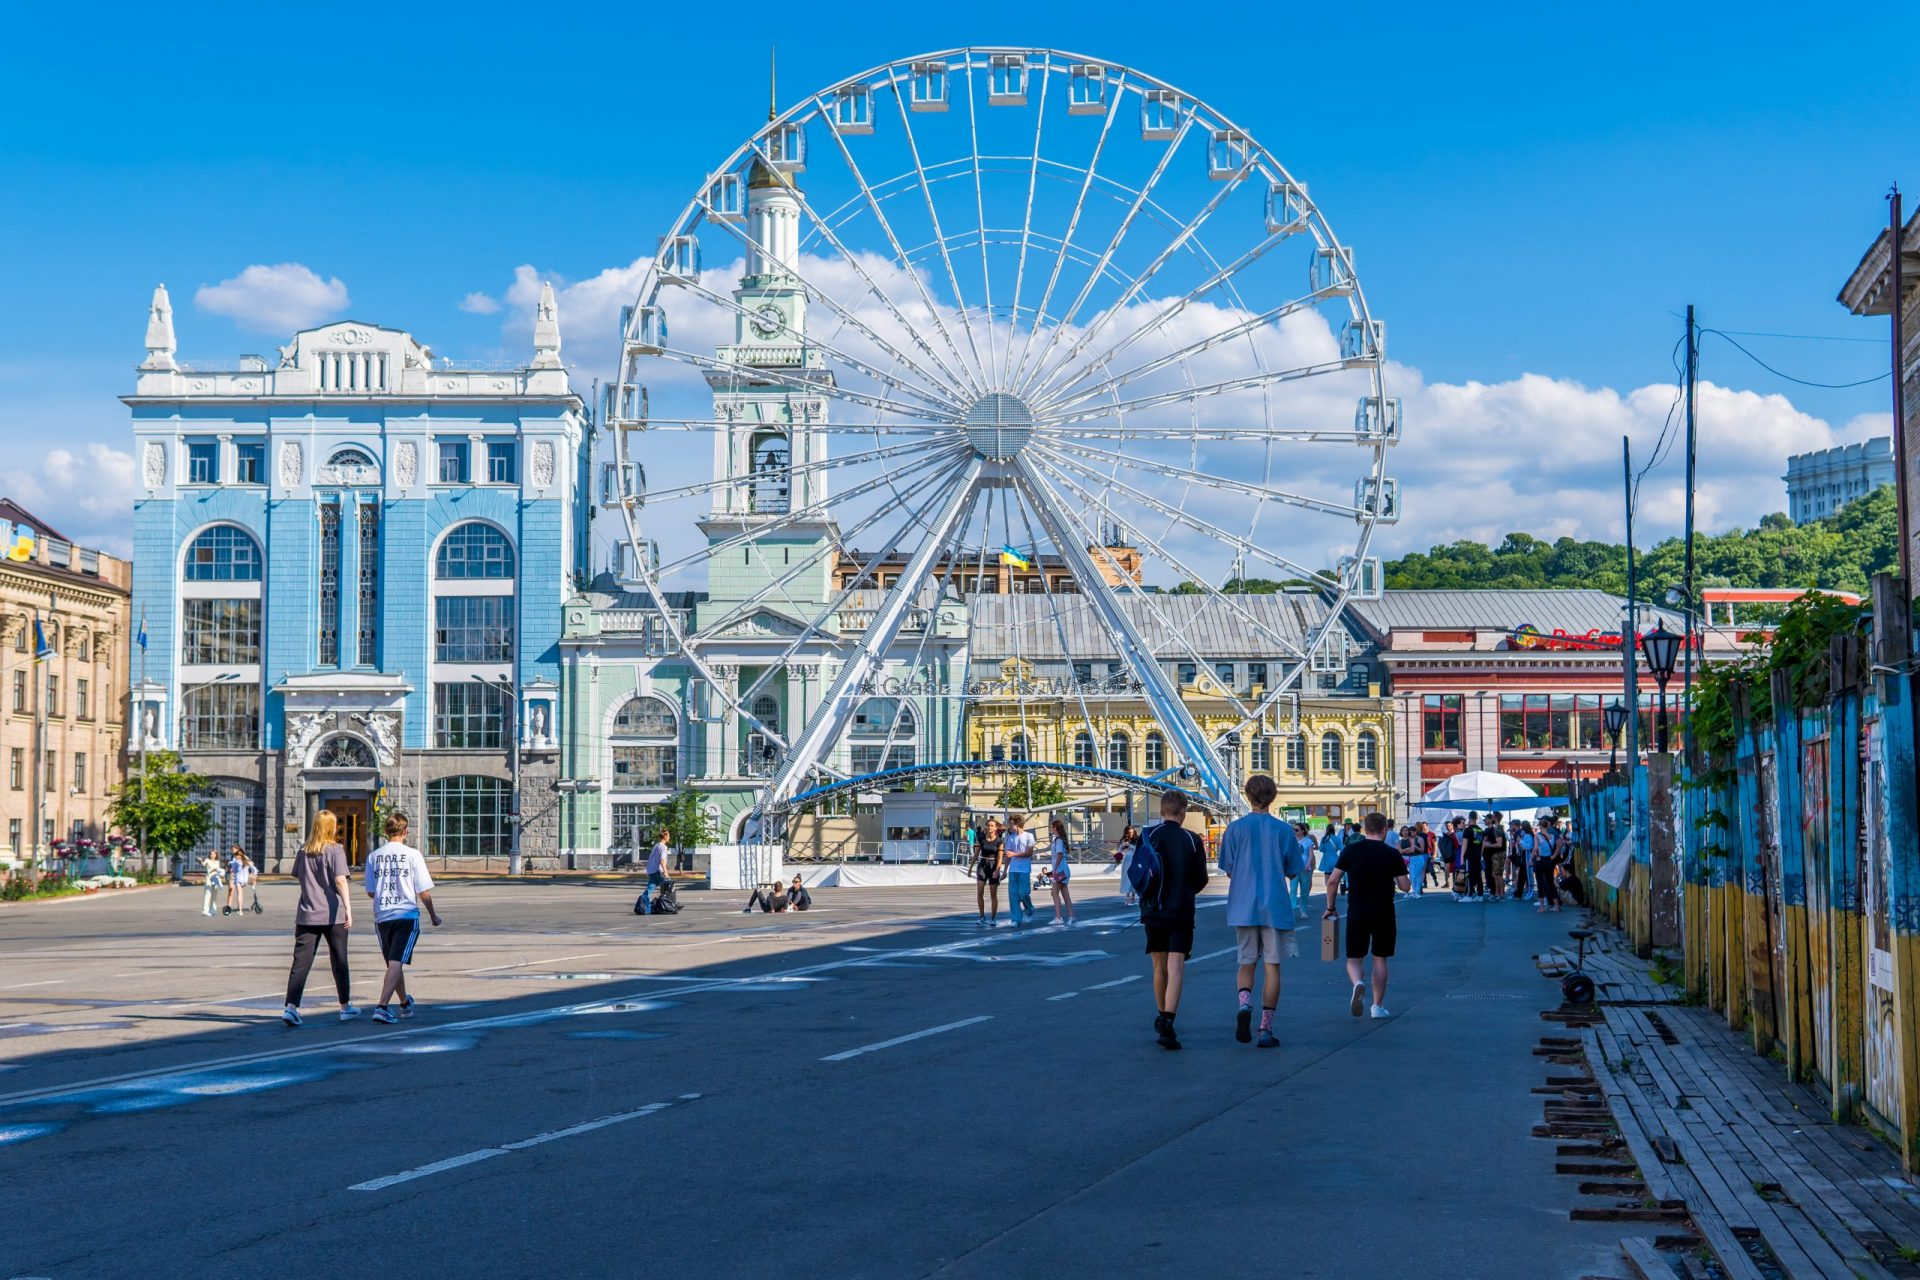 Things to do in Kyiv - people on the main square of the Podil neighborhood with ferris wheel and traditional architecture